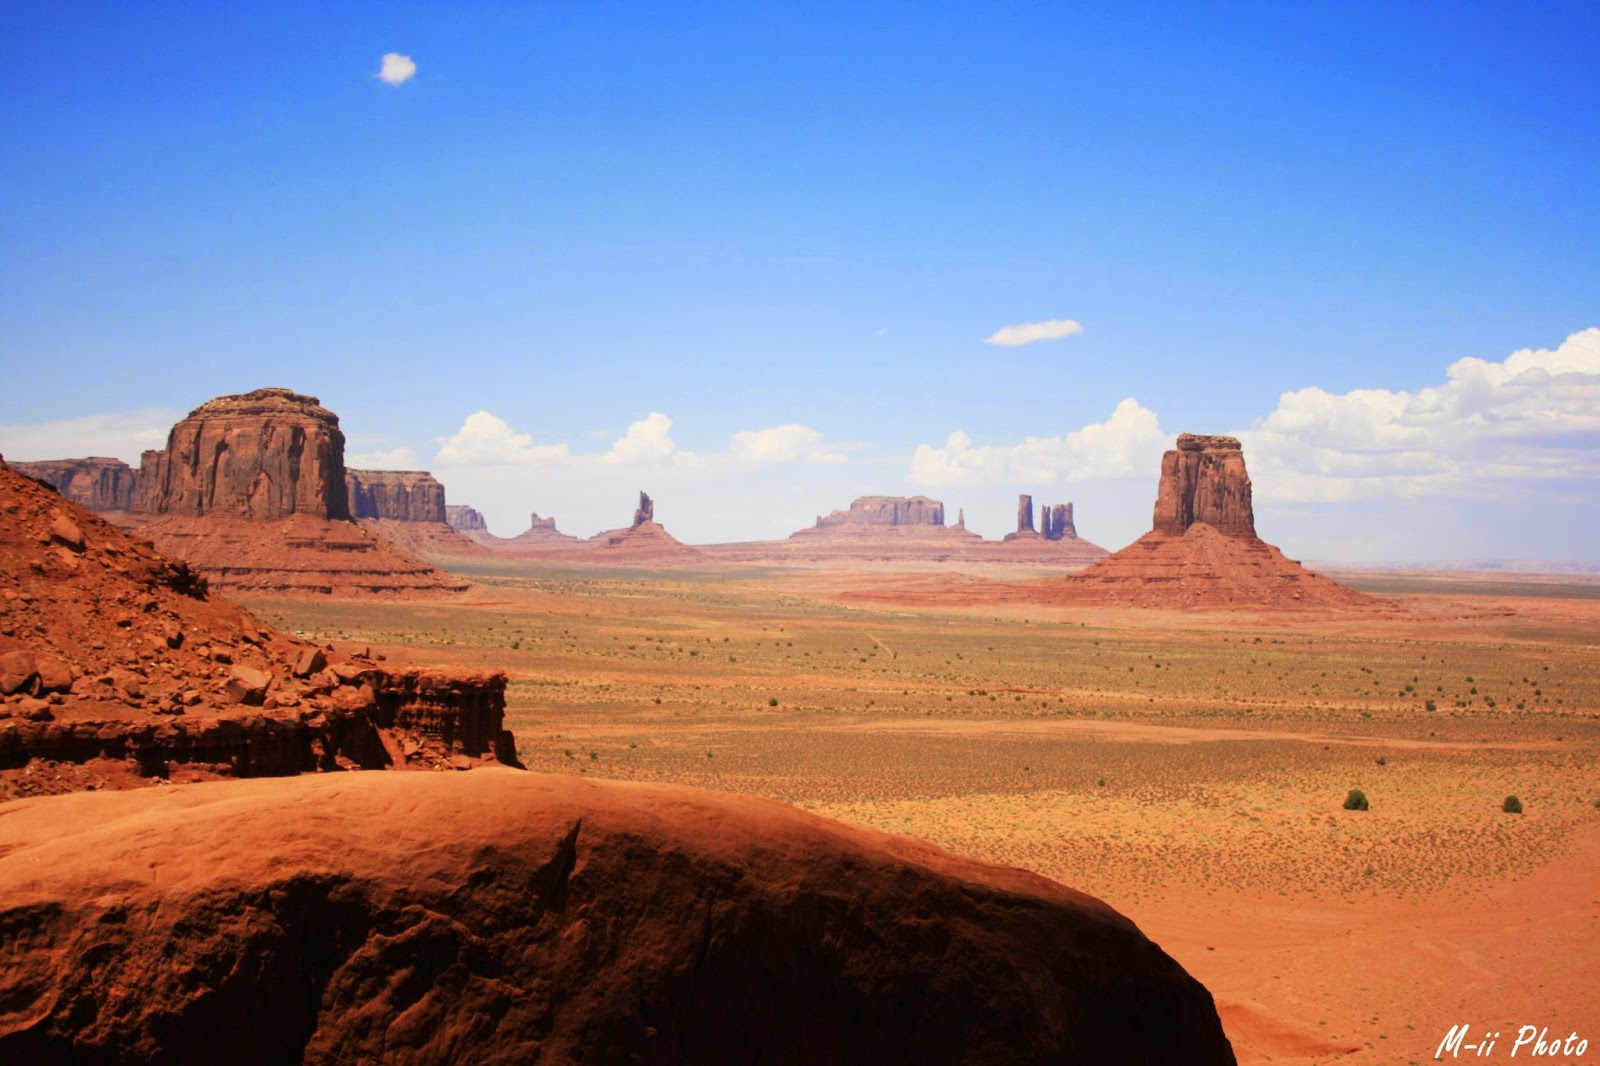 M-ii Photo: Monument Valley Artist Point Overlook